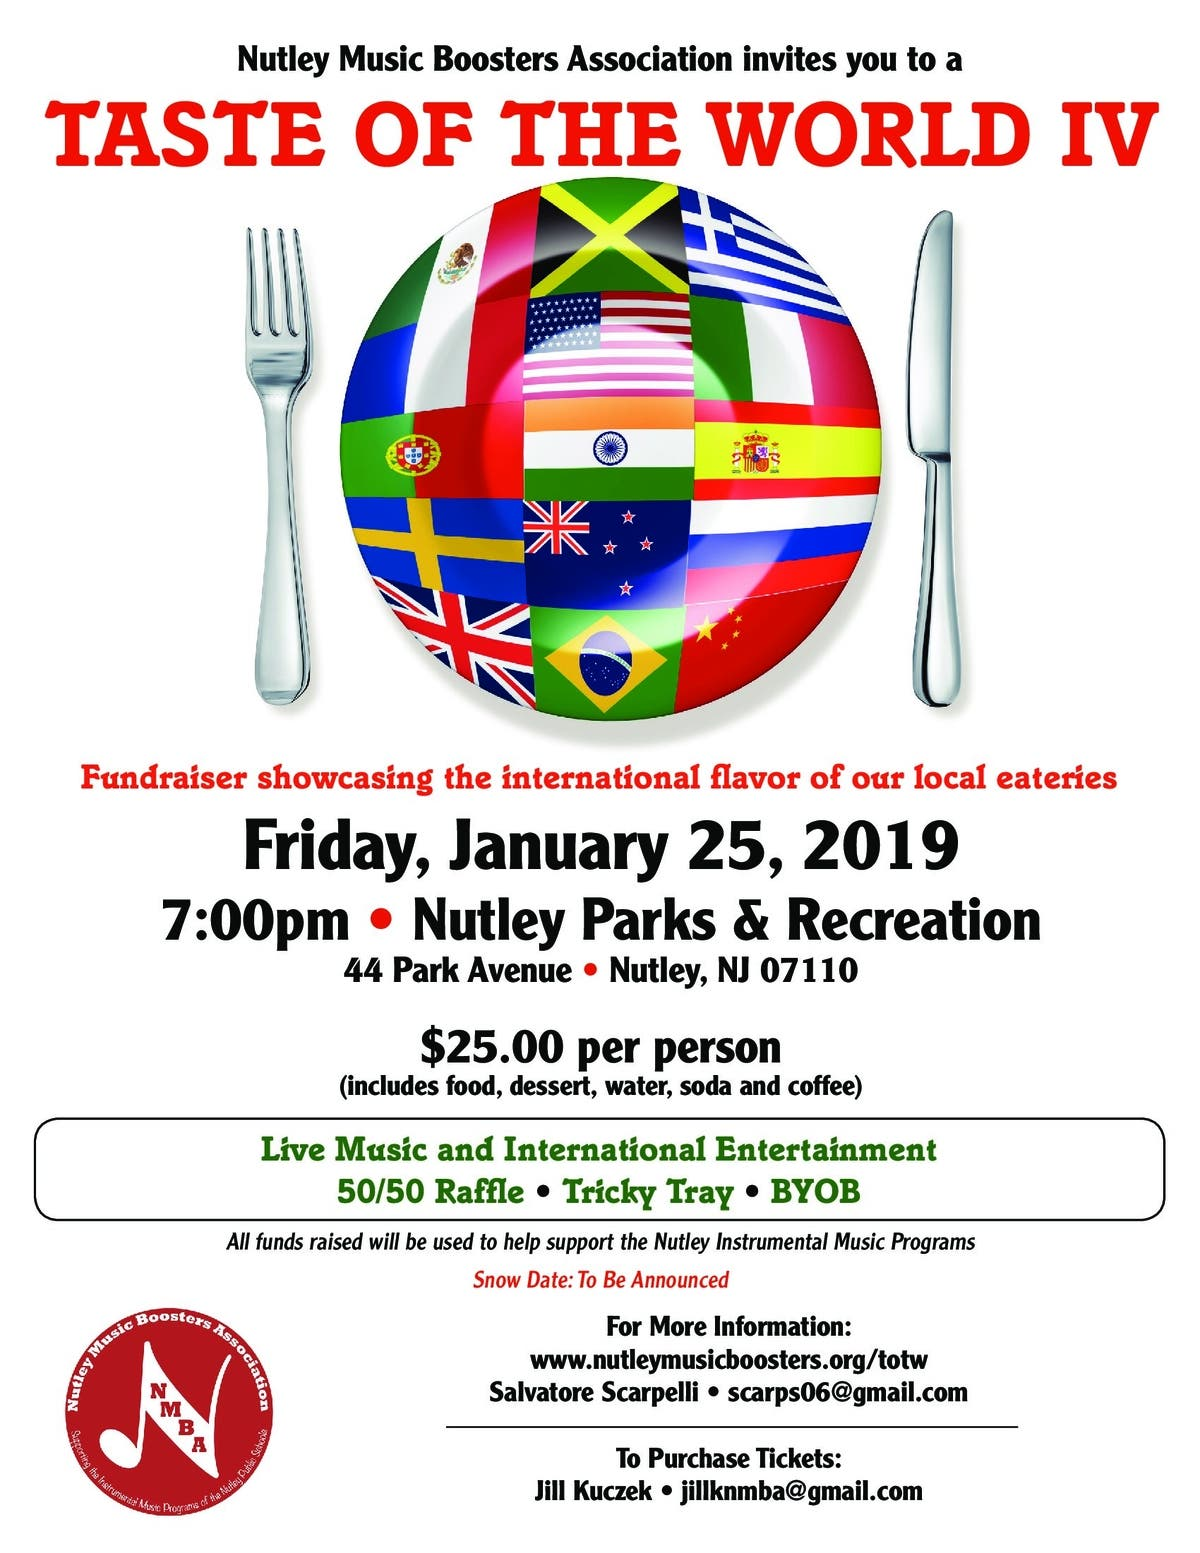 Nutley Music Boosters Holding 'Taste Of World' Fundraiser